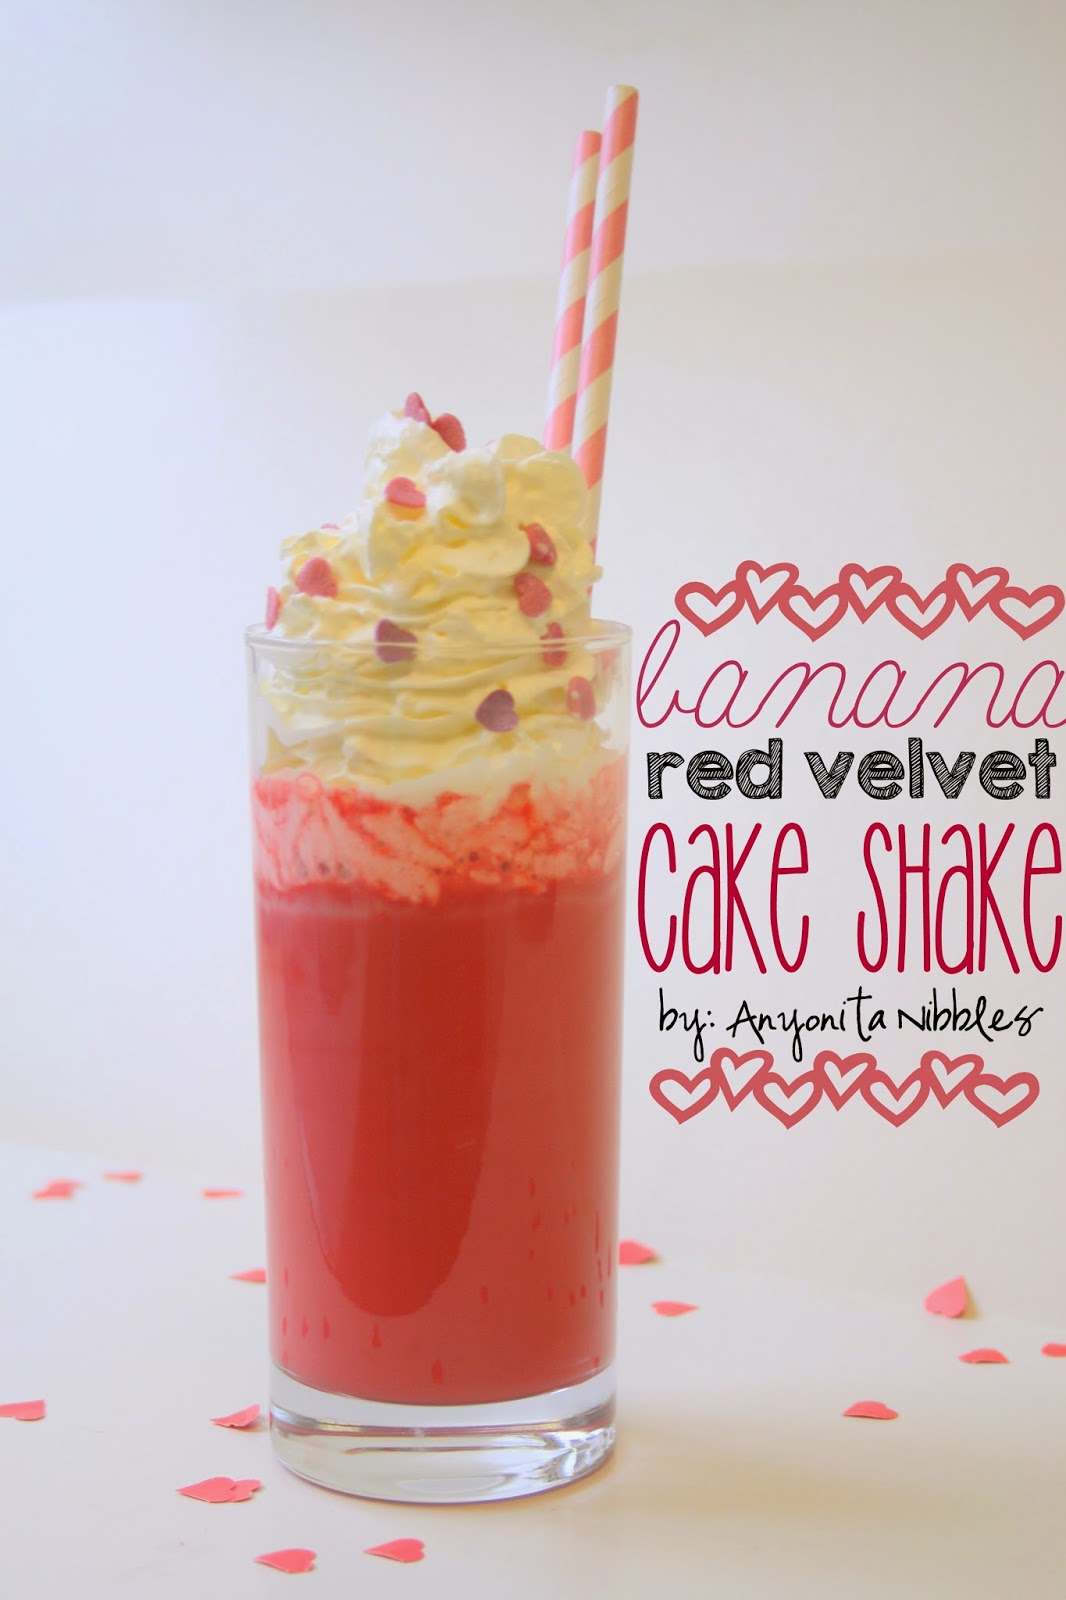 "Banana Red Velvet Cake Shake ""I love that she uses red velvet flavoring and coloring to make a shake!"""